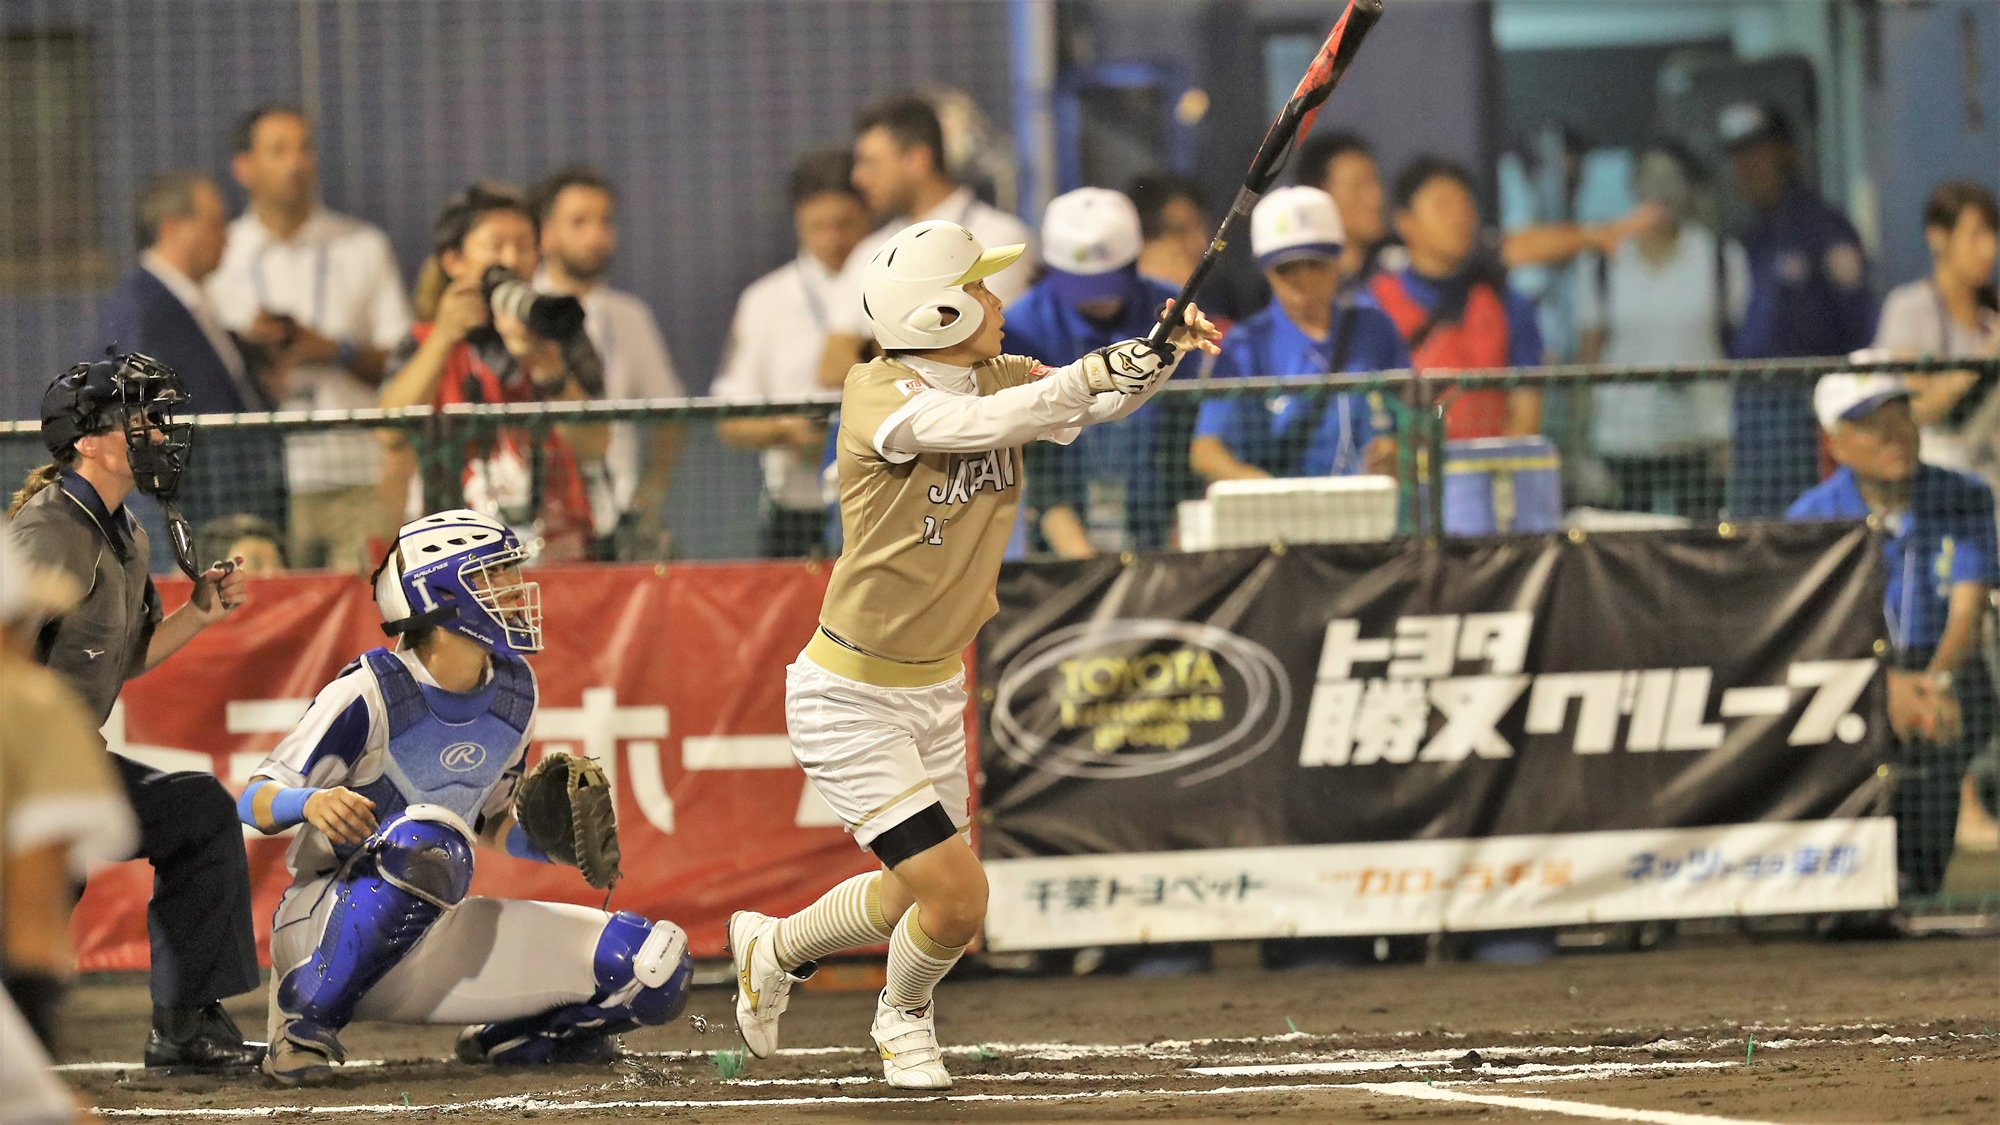 Eri Yamada hit a home run on the first pitch of the tournament